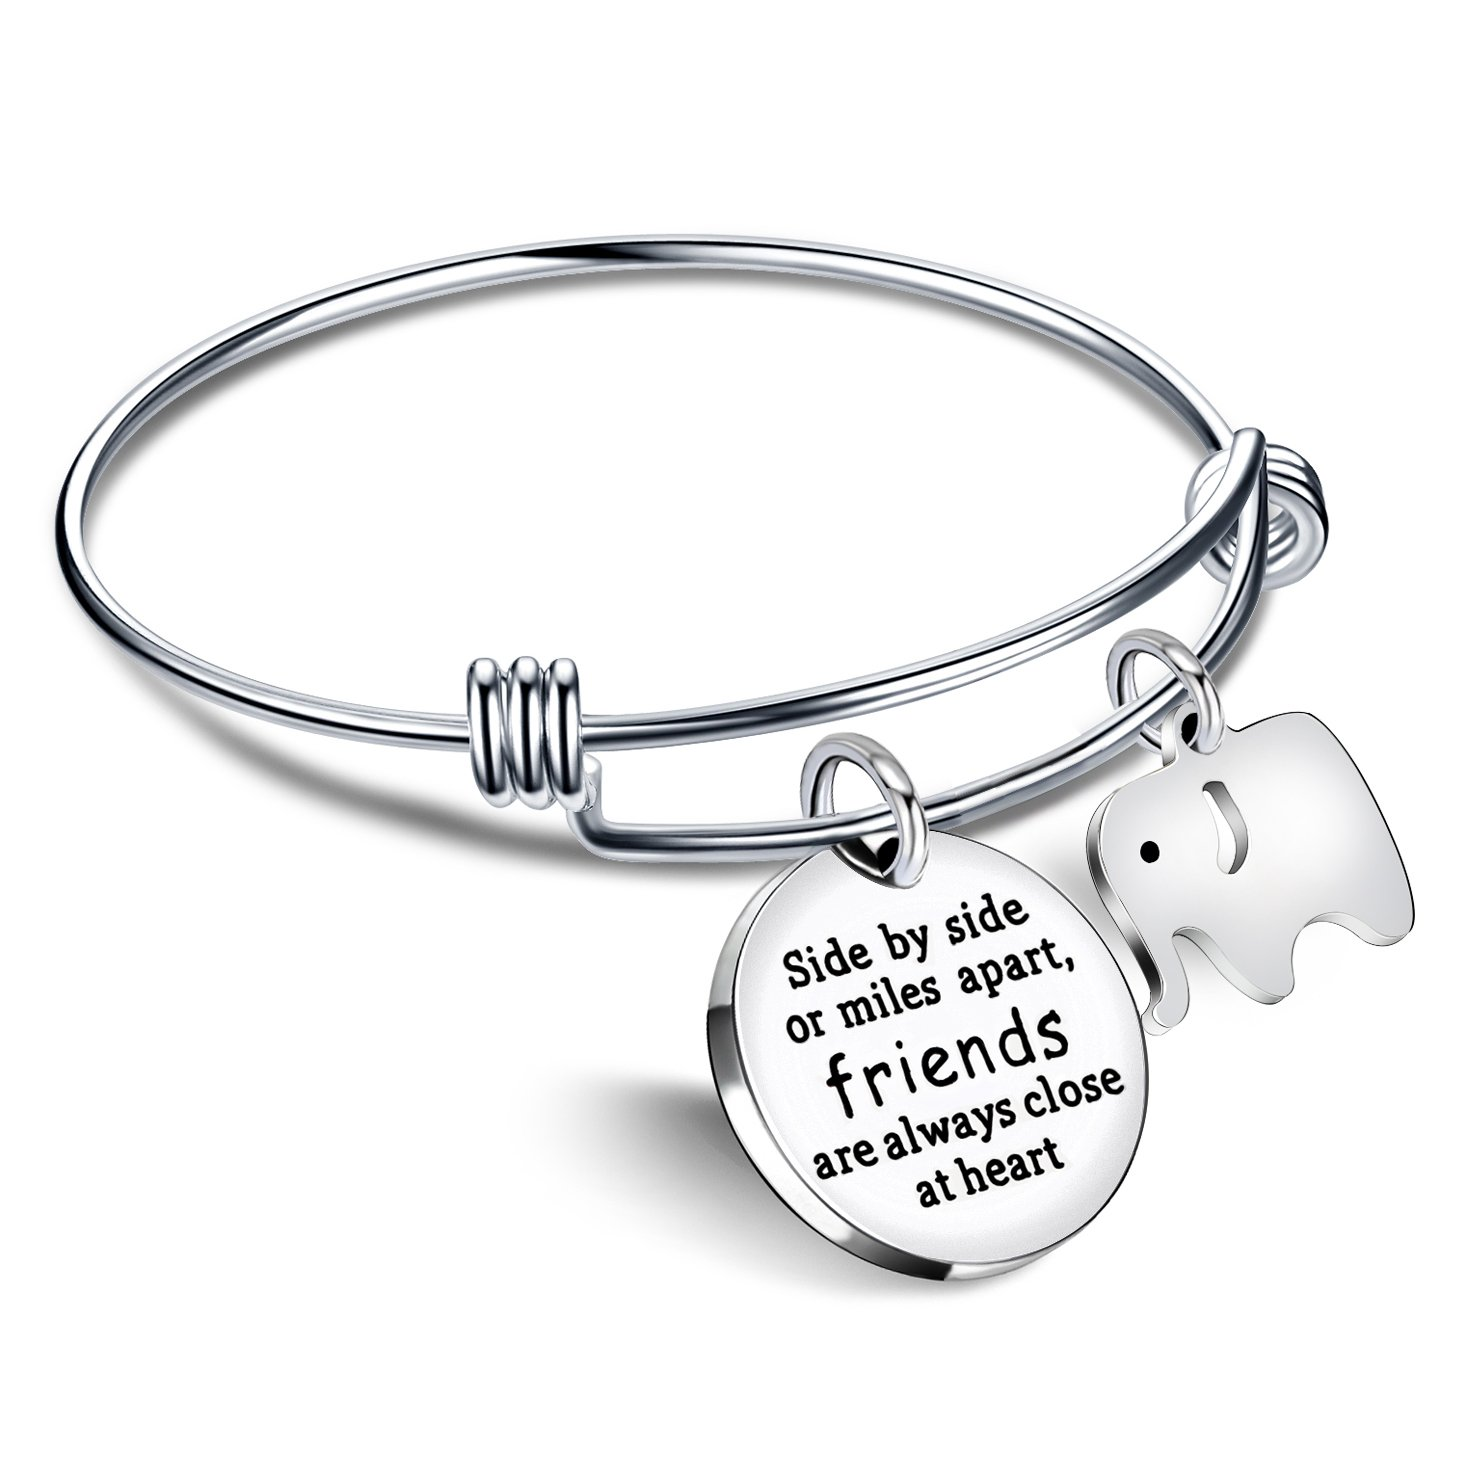 Bangle Bracelets Friendship Best Friend Gifts Elephant Pendant Friends are always close at heart lauhonmin AB085-CA